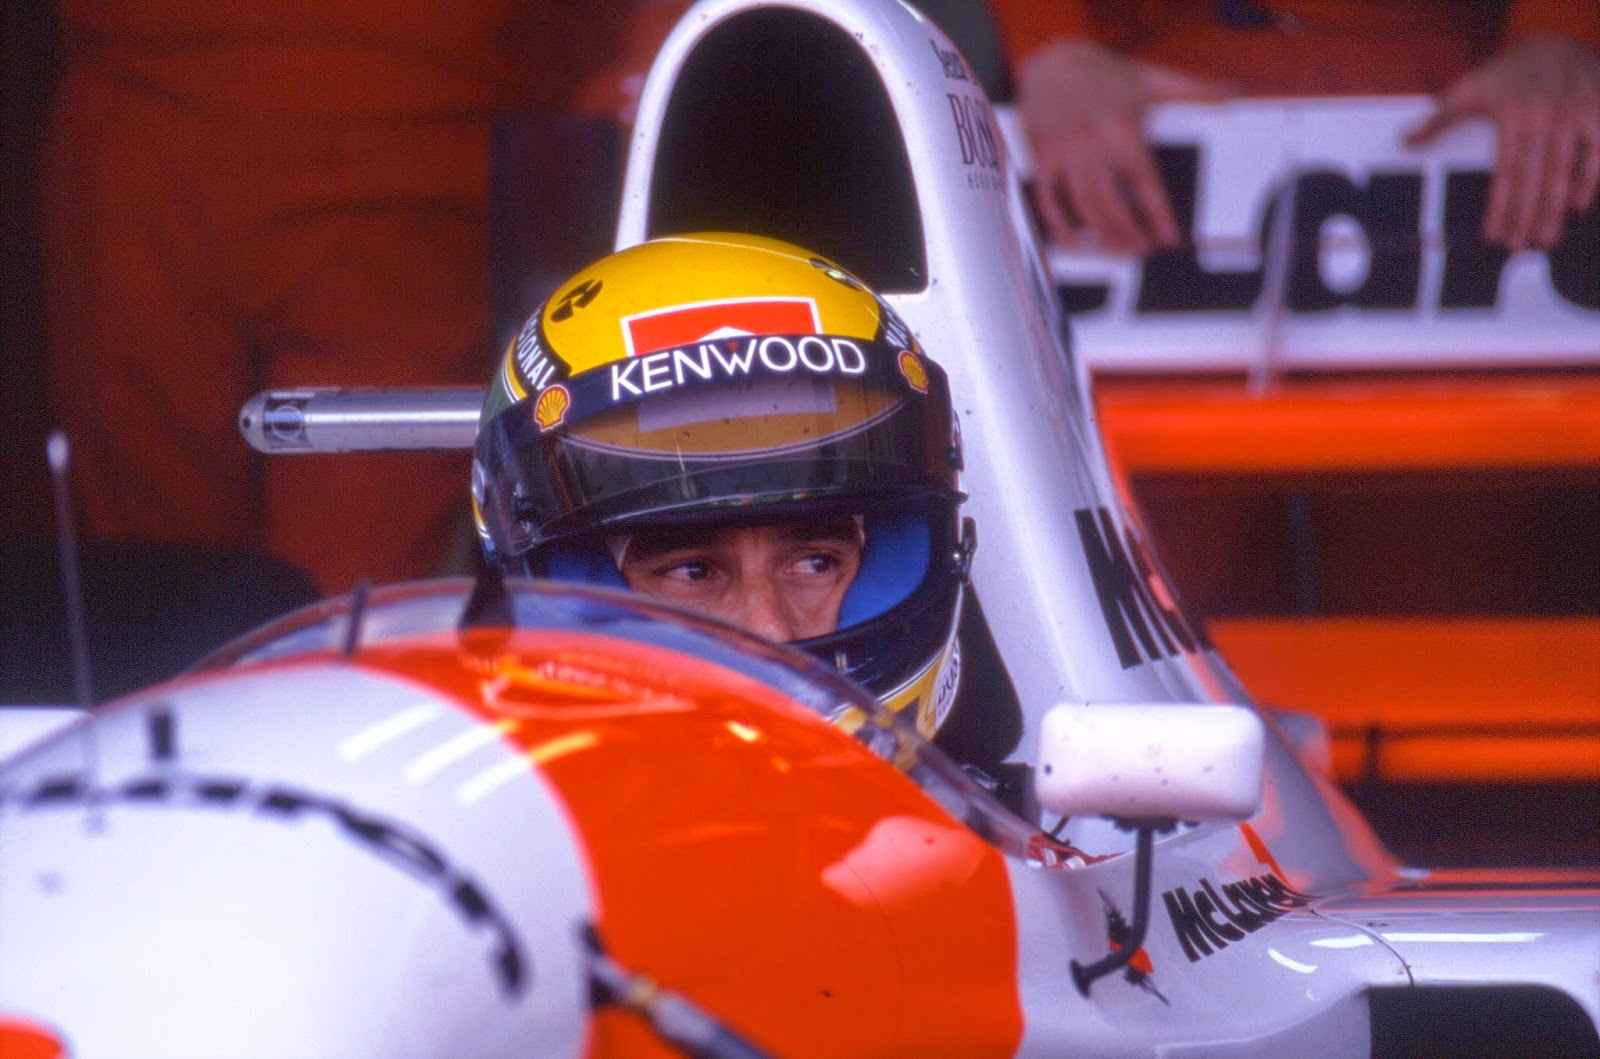 Senna was unhappy with the situation at McLaren